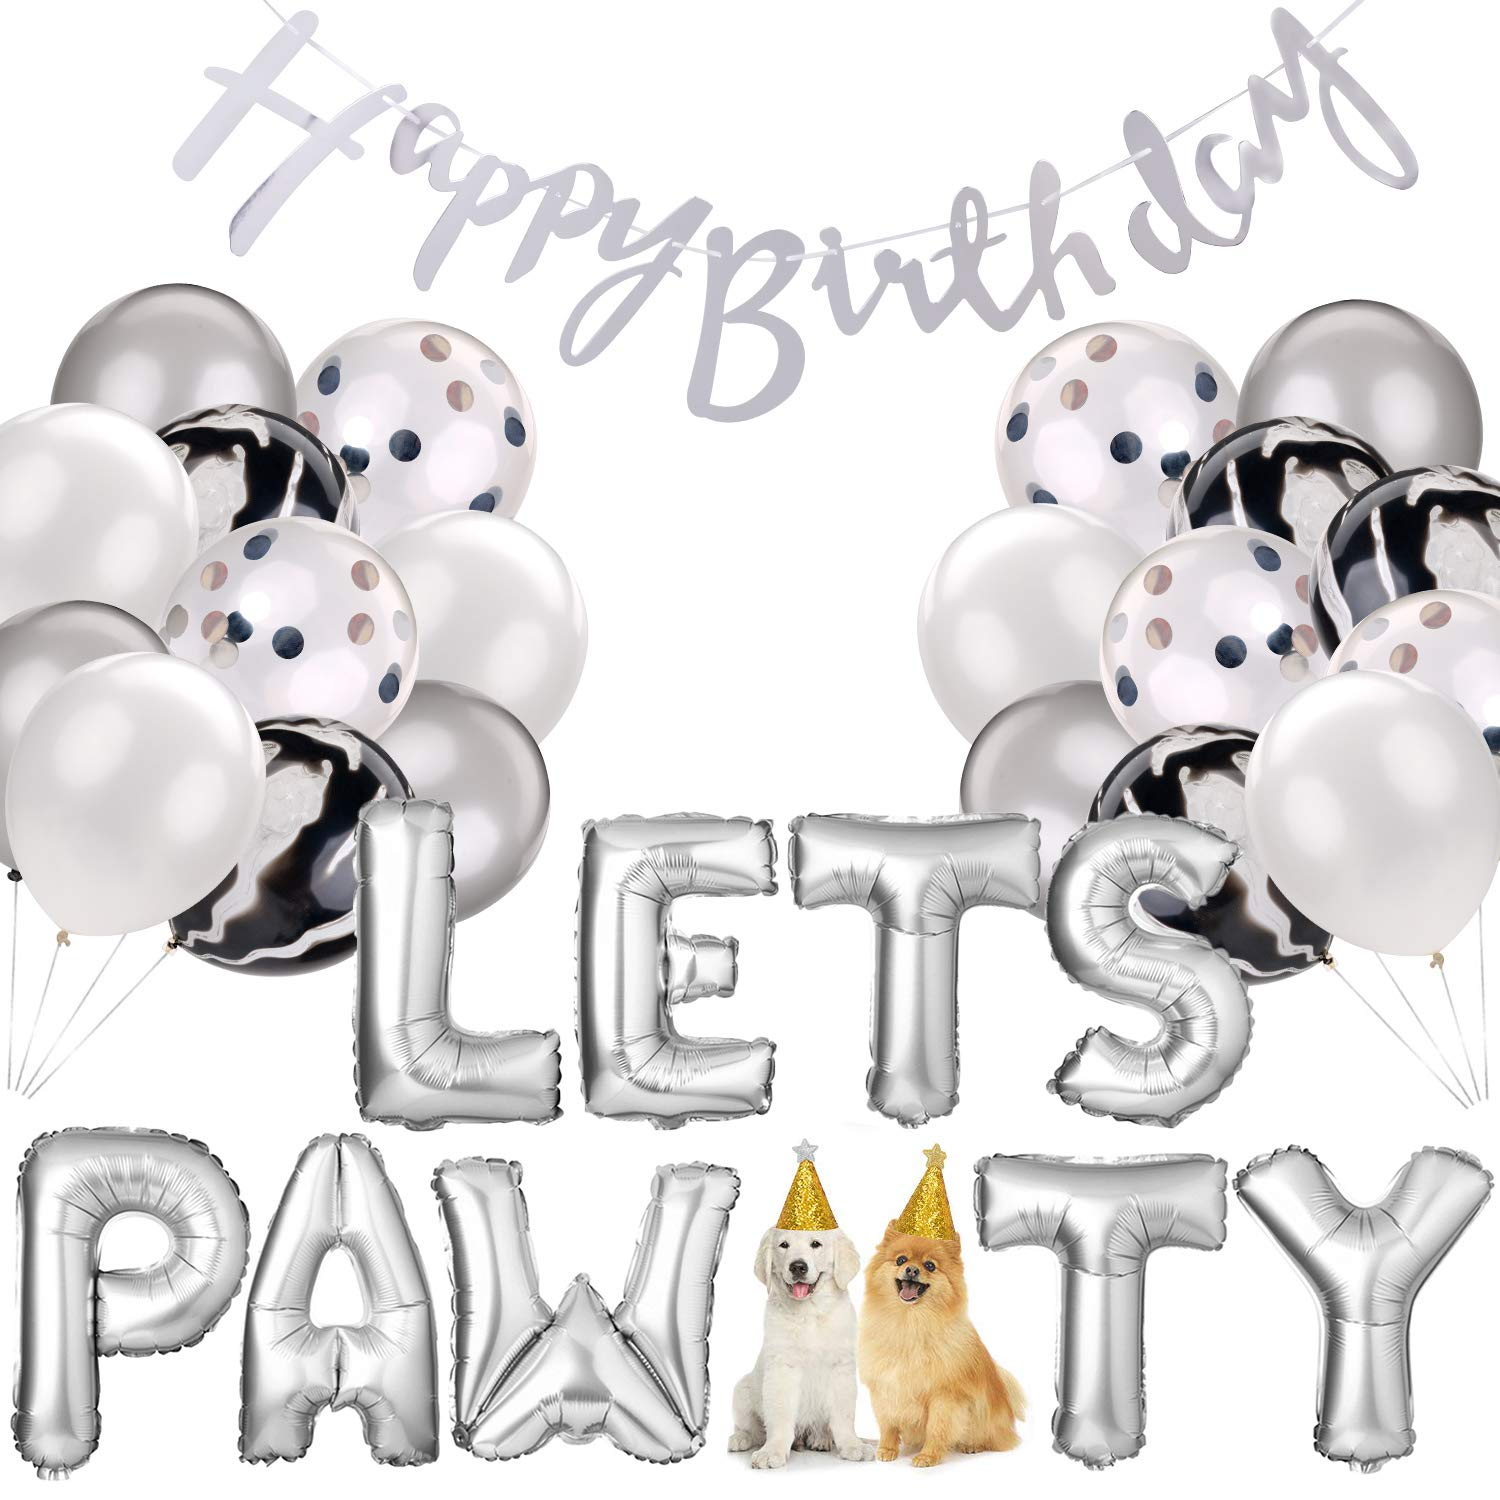 Dog Birthday Party Supplies,Pet Birthday Decorations Set, Lets Pawty Balloons,Happy Birthday Banner, Confetti Balloons for Pet Party Decoration Set (Silver)